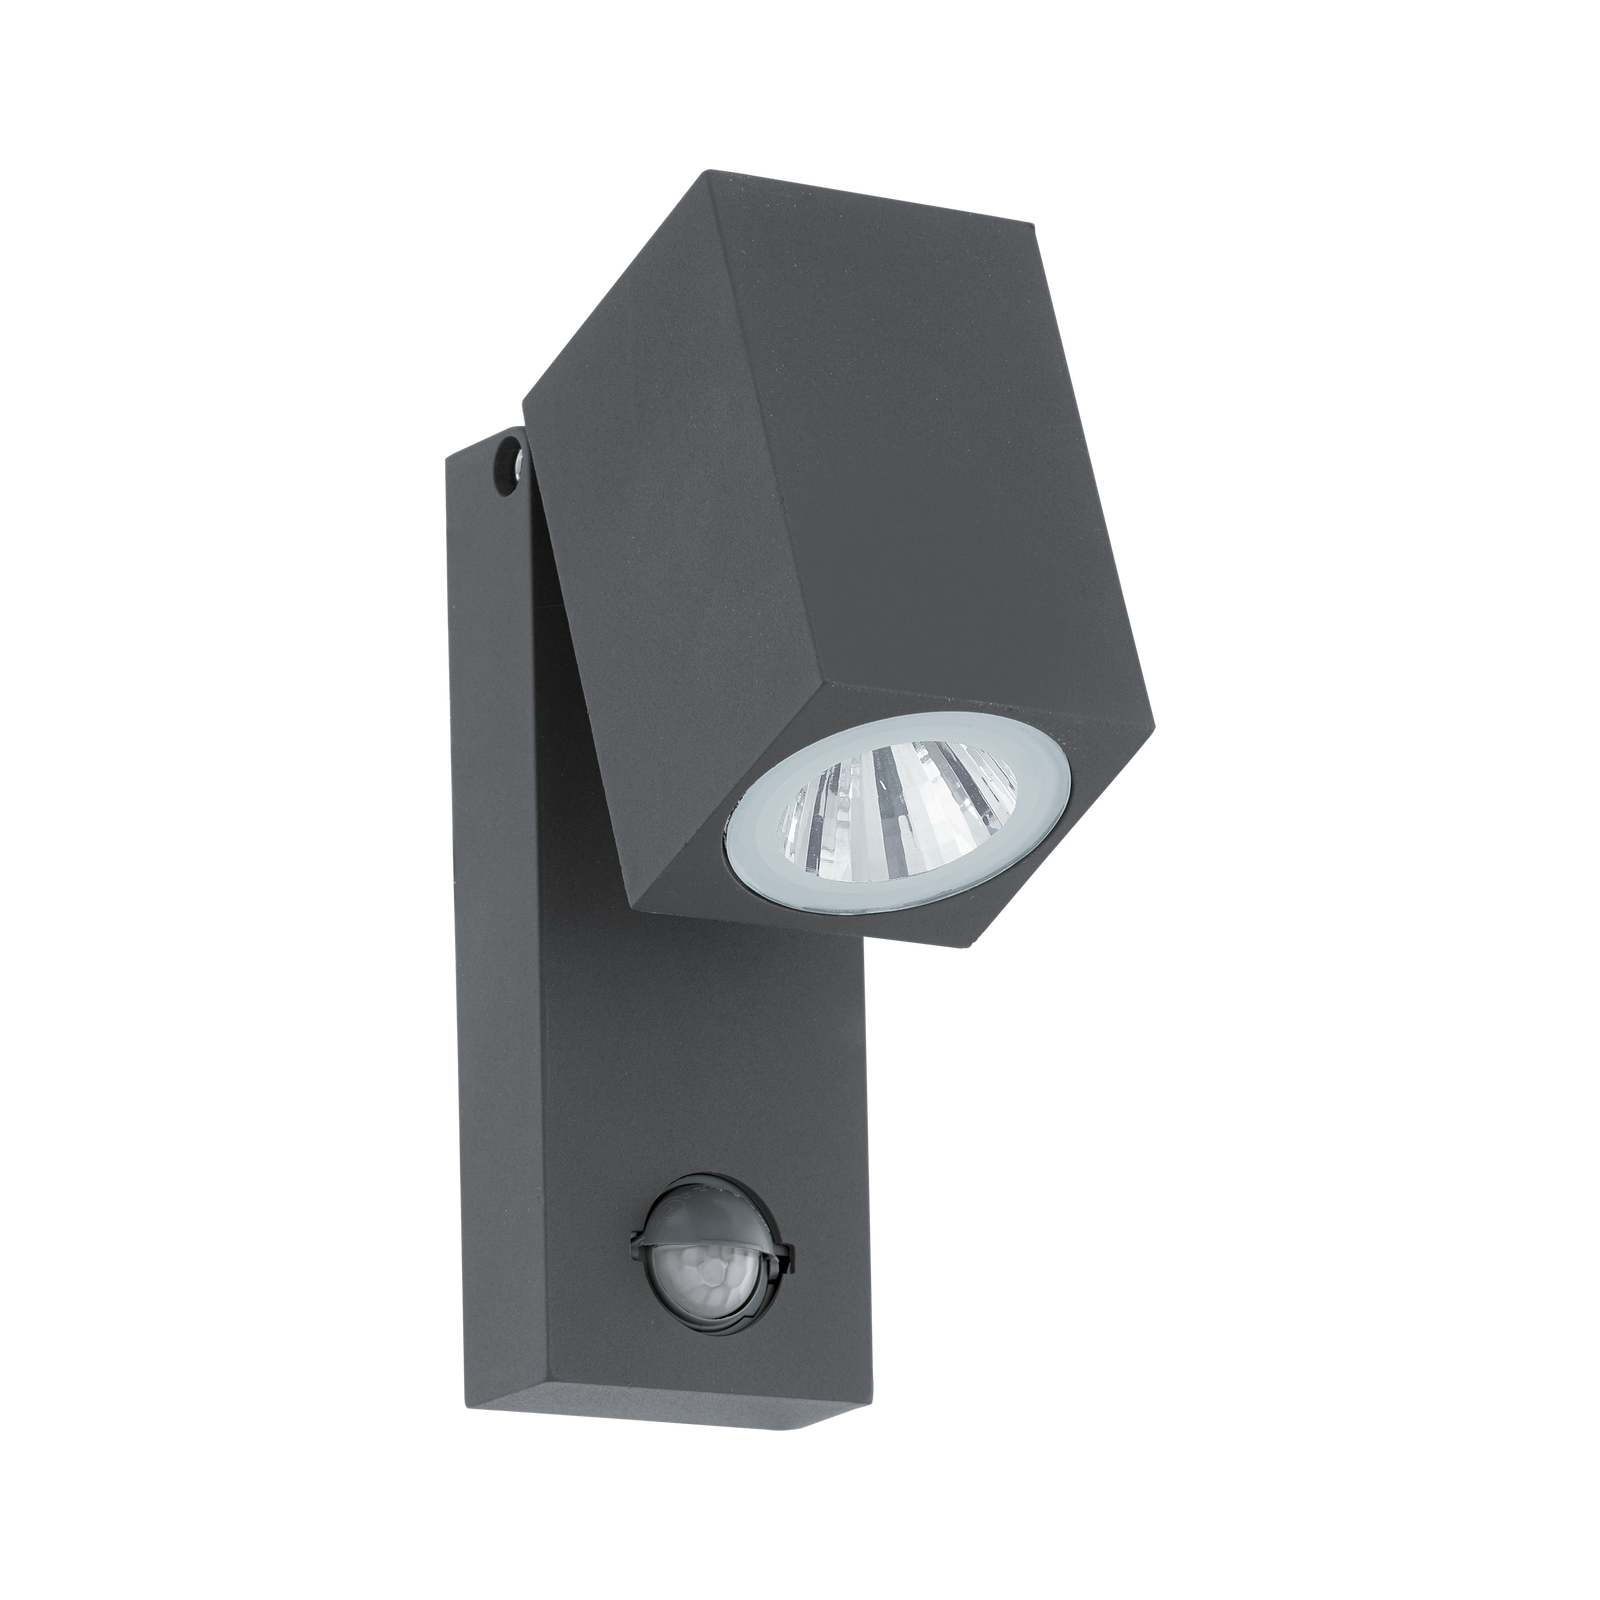 Sakeda outdoor security led wall light lightinguk sakeda outdoor security led wall light aloadofball Image collections